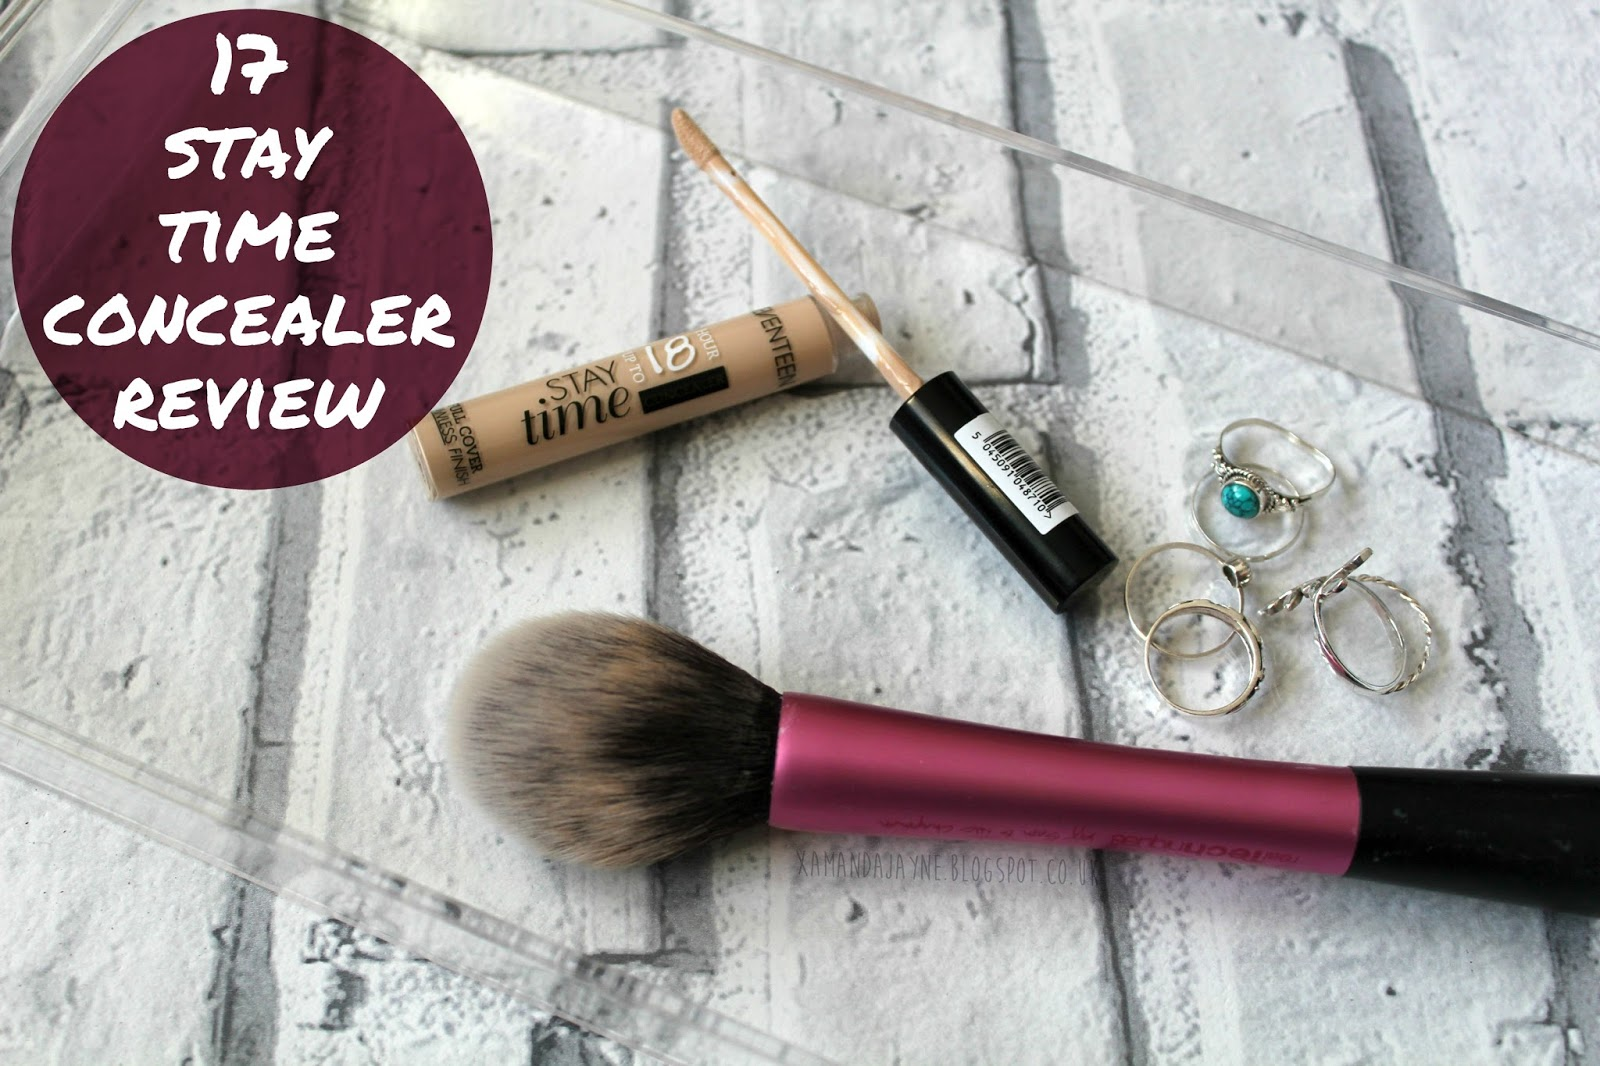 17 stay time concealer review, affordable, drugstore, beauty, cosmetics, review, cruelty-free